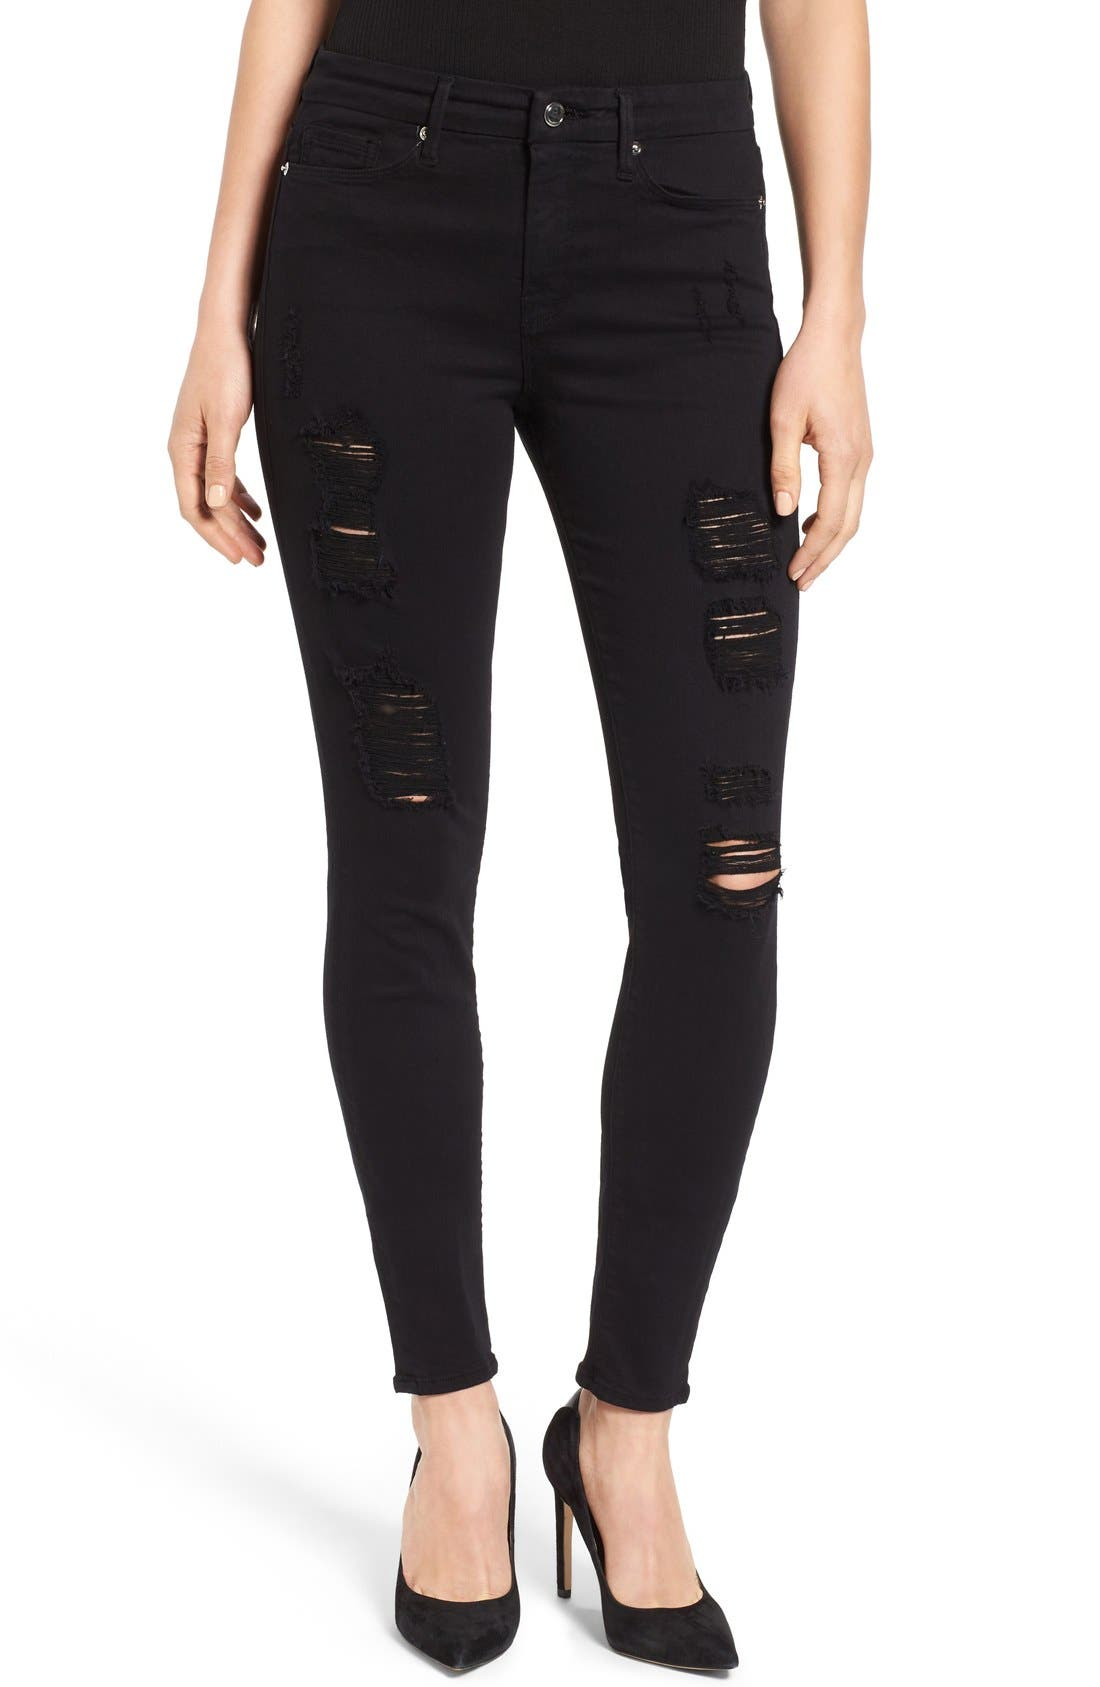 Alternate Image 1 Selected - Good American Good Legs High Rise Ripped Skinny Jeans (Black 002)